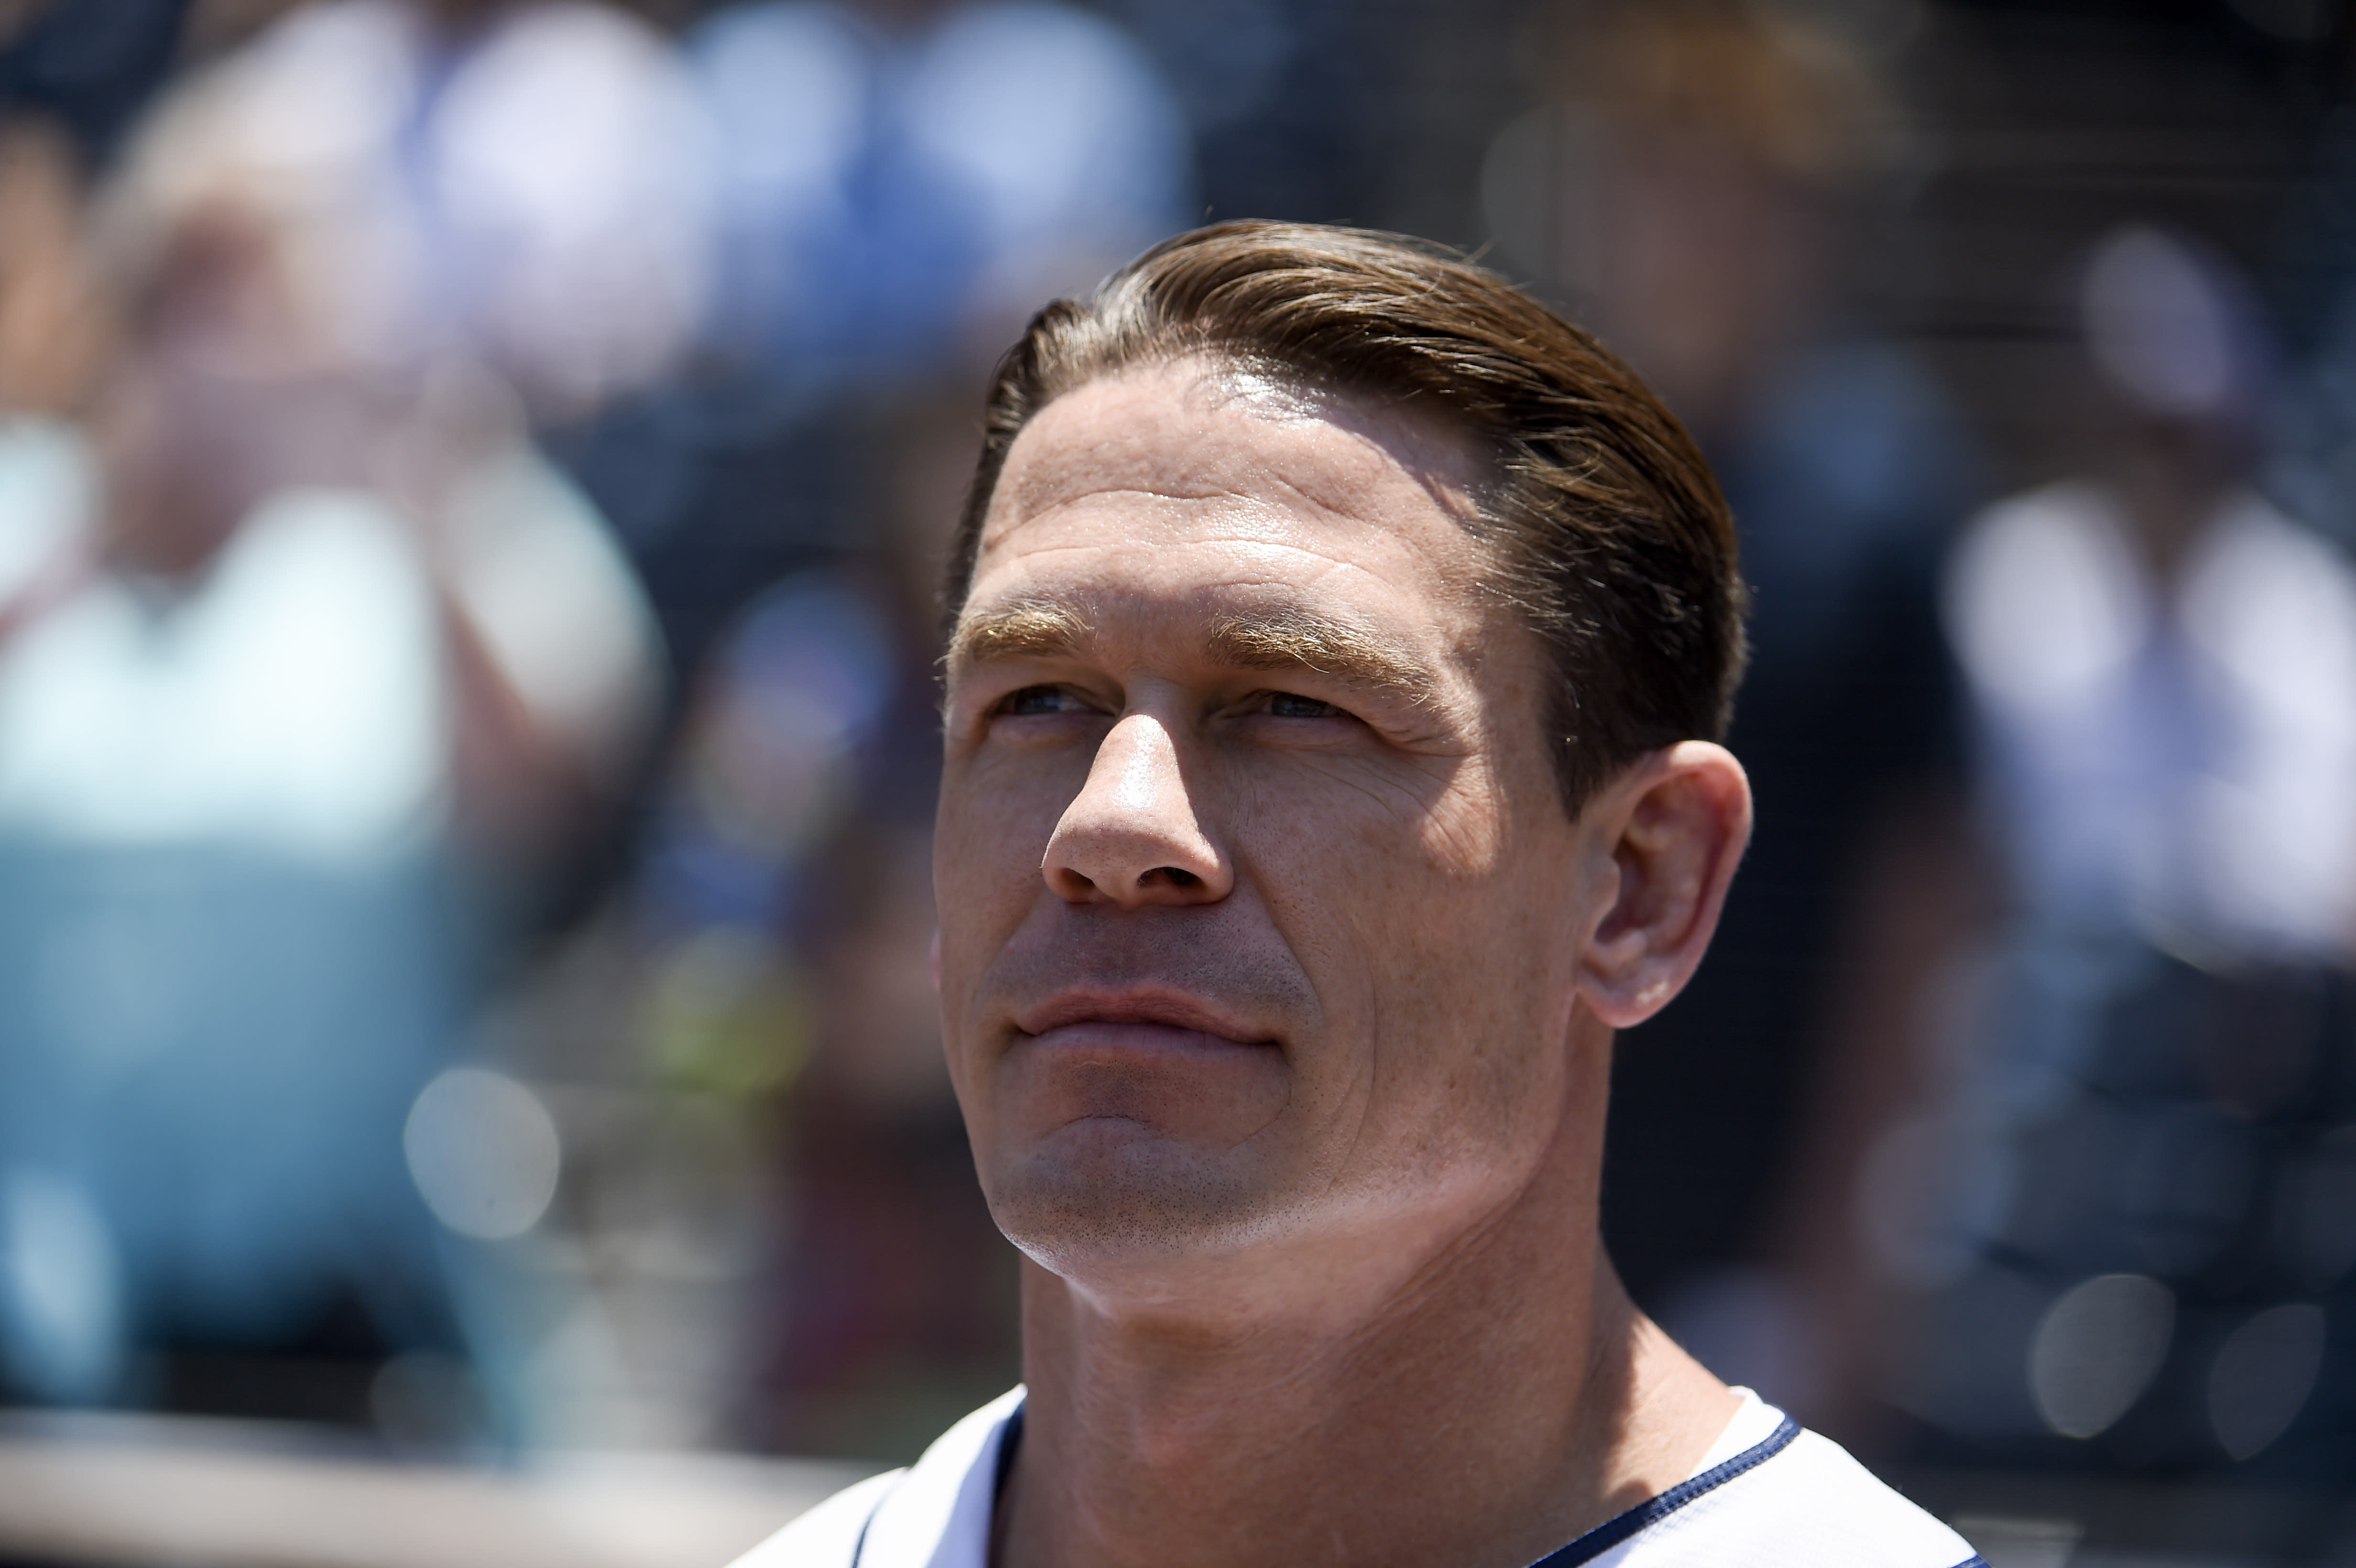 From Vanilla Ice 'wannabe' to Mr. positivity: John Cena says staying authentic is key to his success